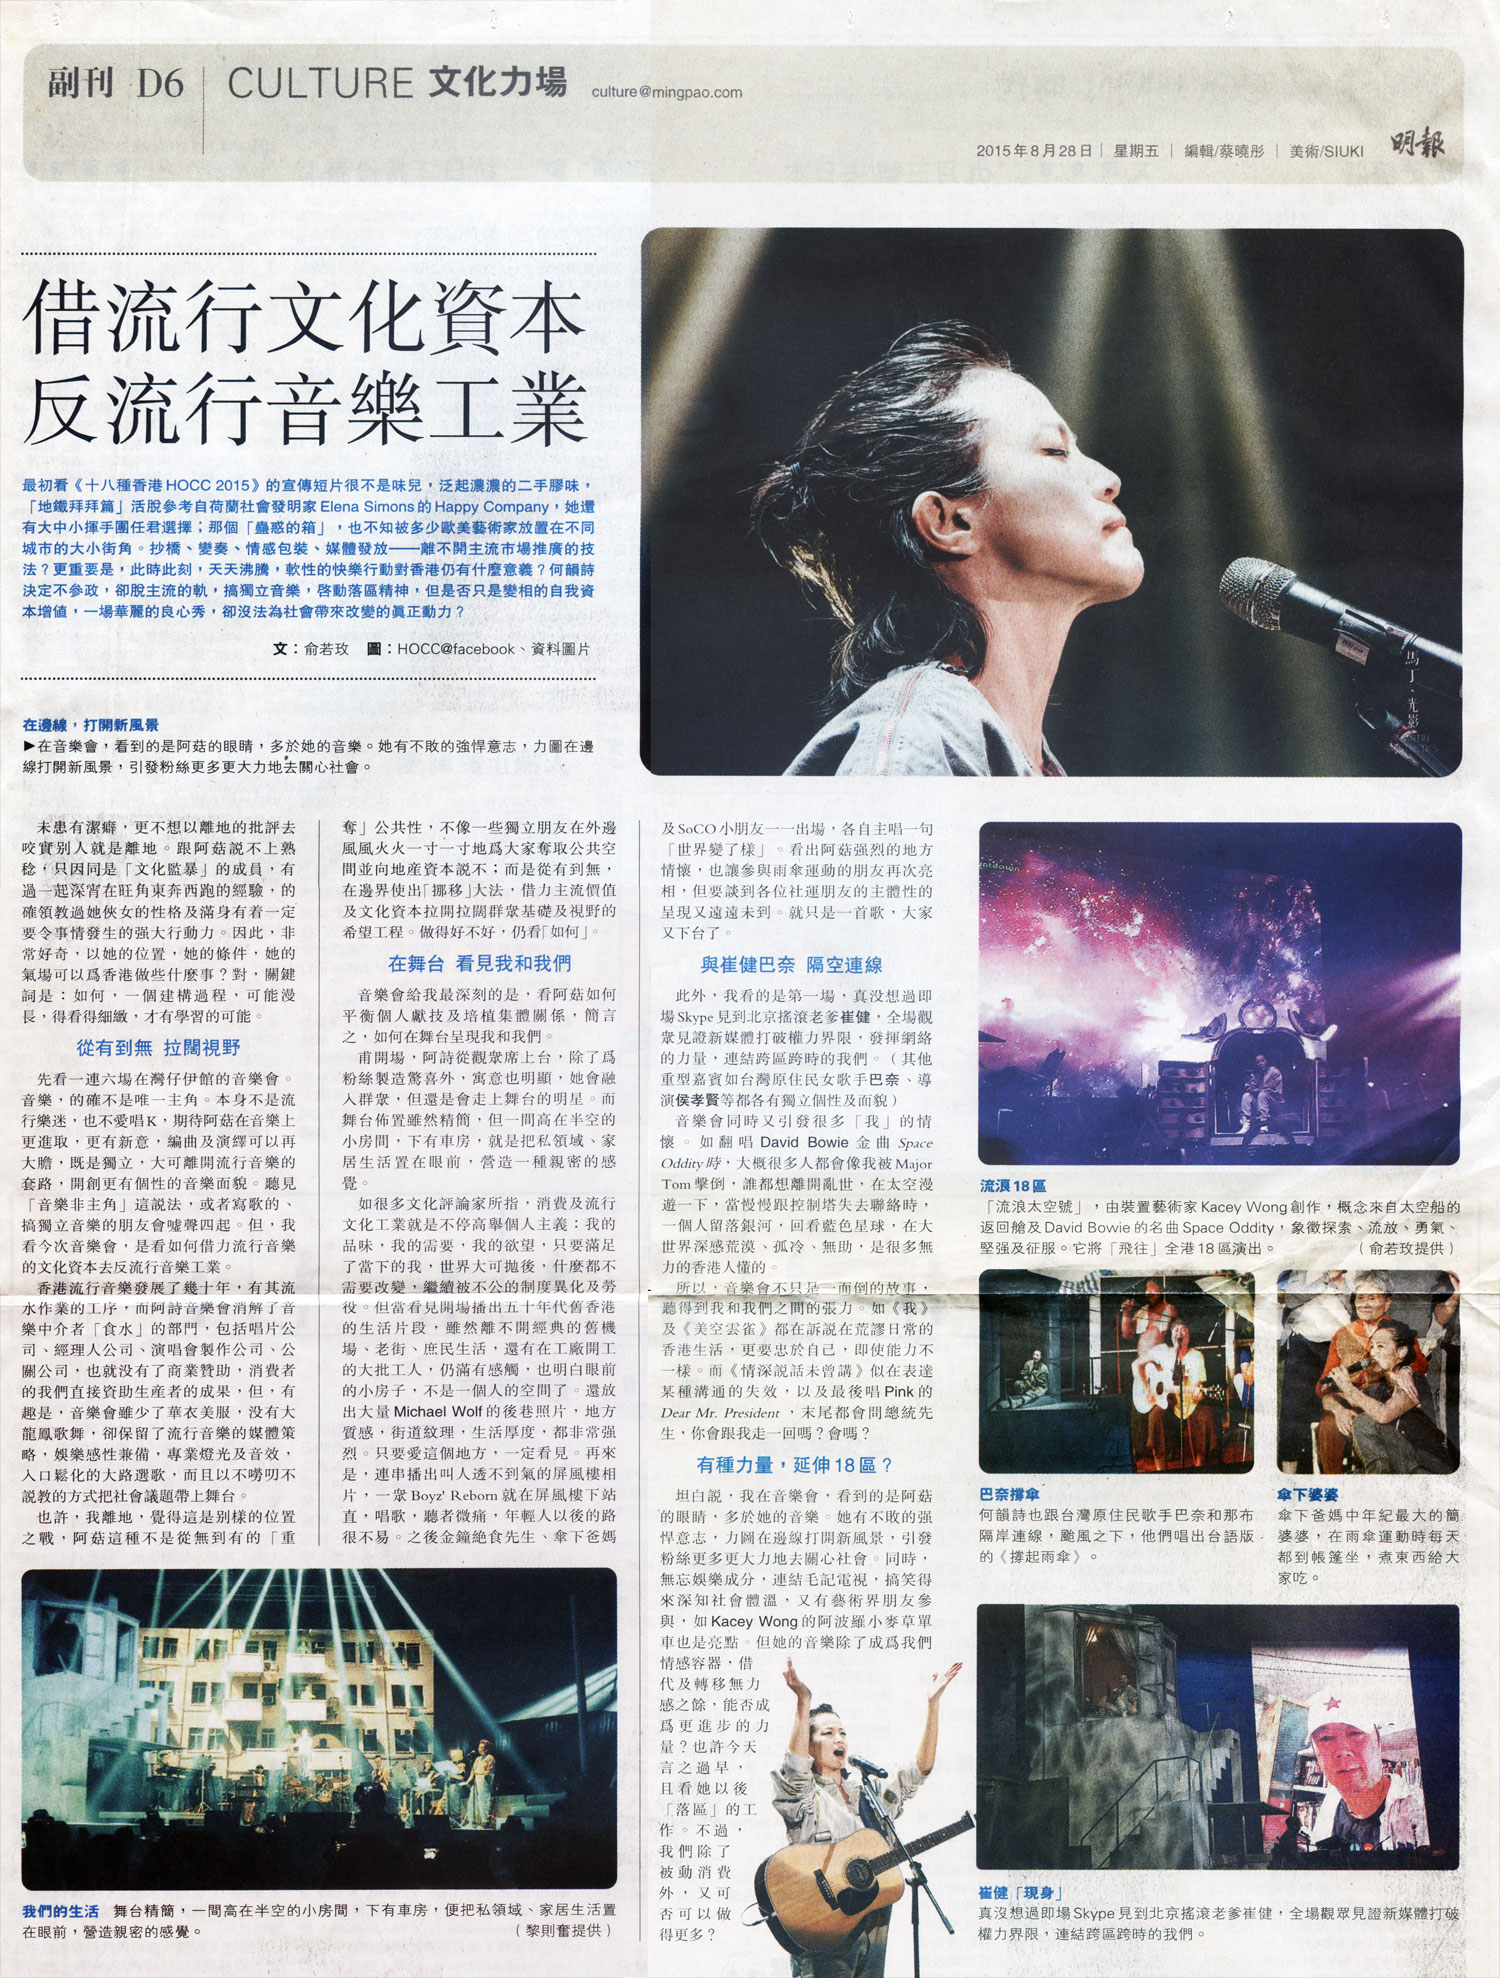 Aug/28/2015 Ming Pao  Borrowing popular cultural capital to subvert popular music industry